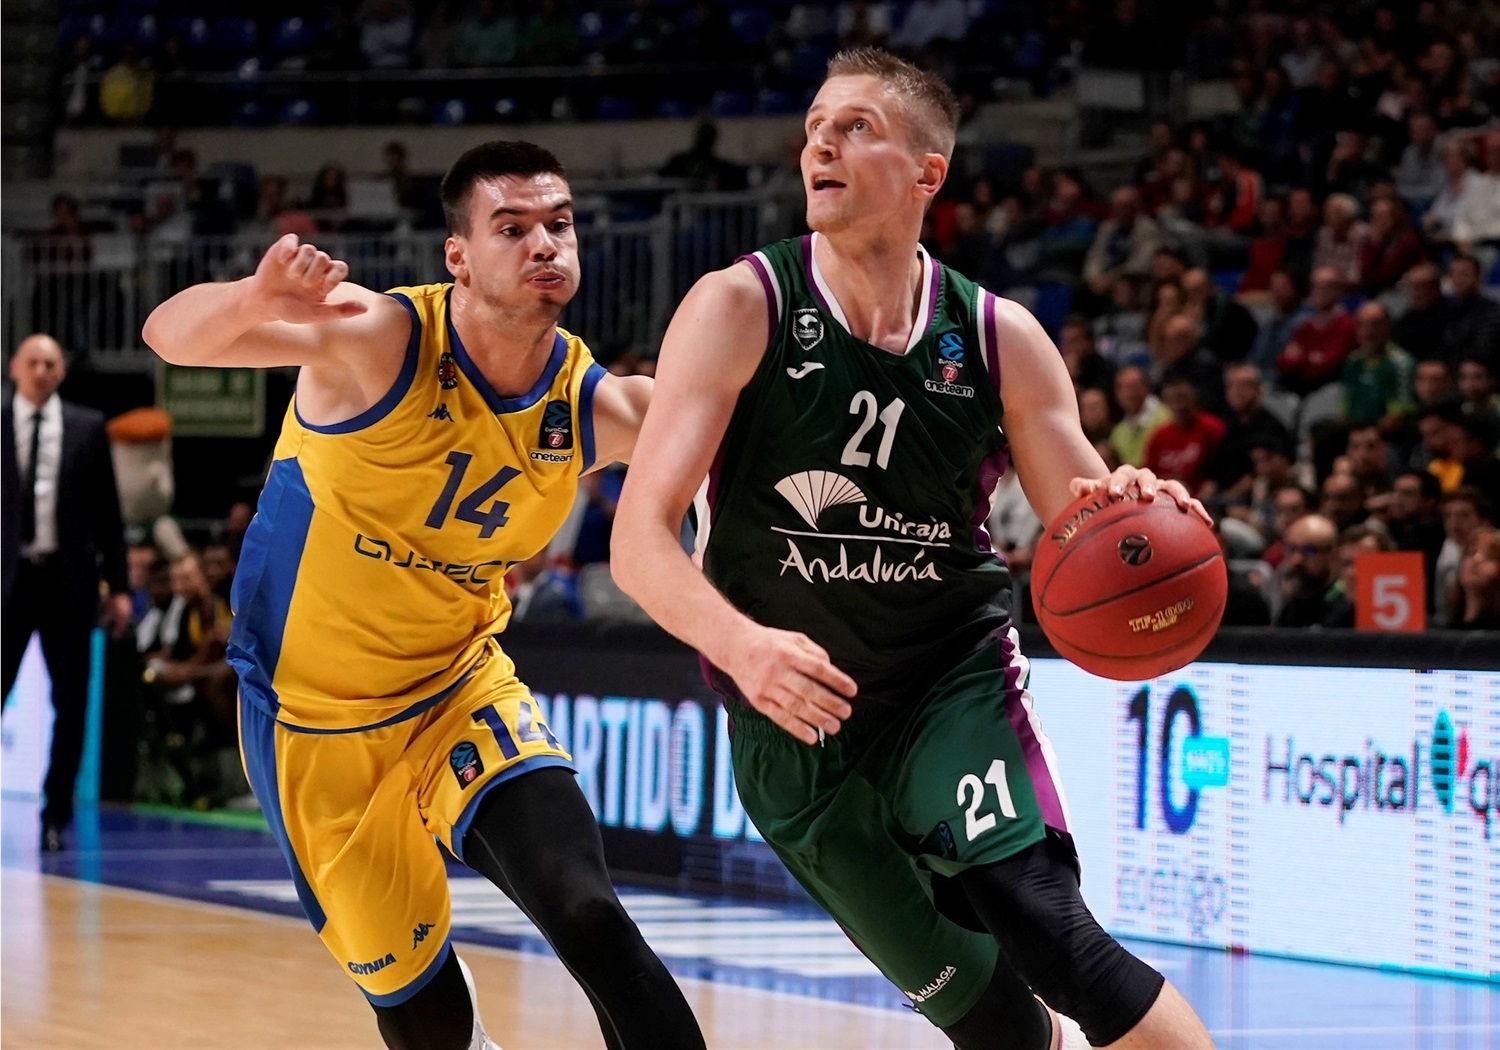 Adam Waczynski - Unicaja Malaga (photo Unicaja - Mariano Pozo) - EC19